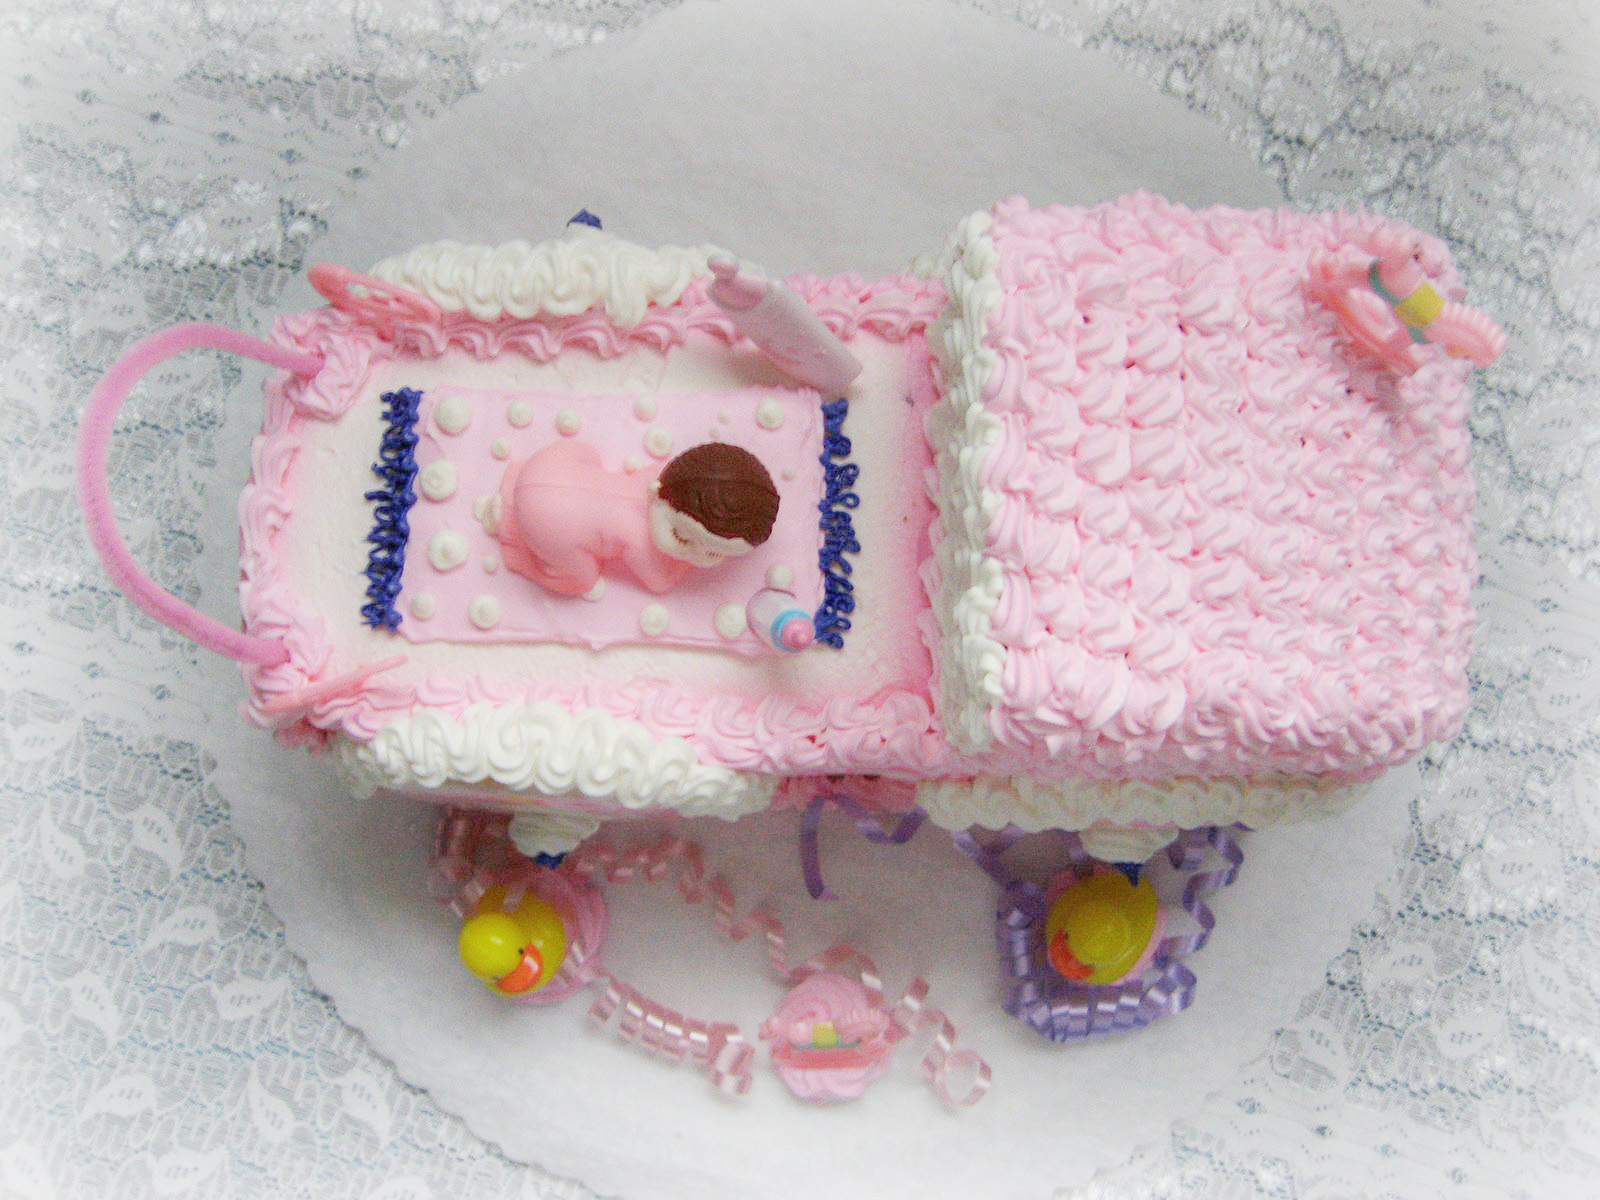 ... Baby Shower Cakes http://kootation.com/kroger-bakery-baby-shower-cakes